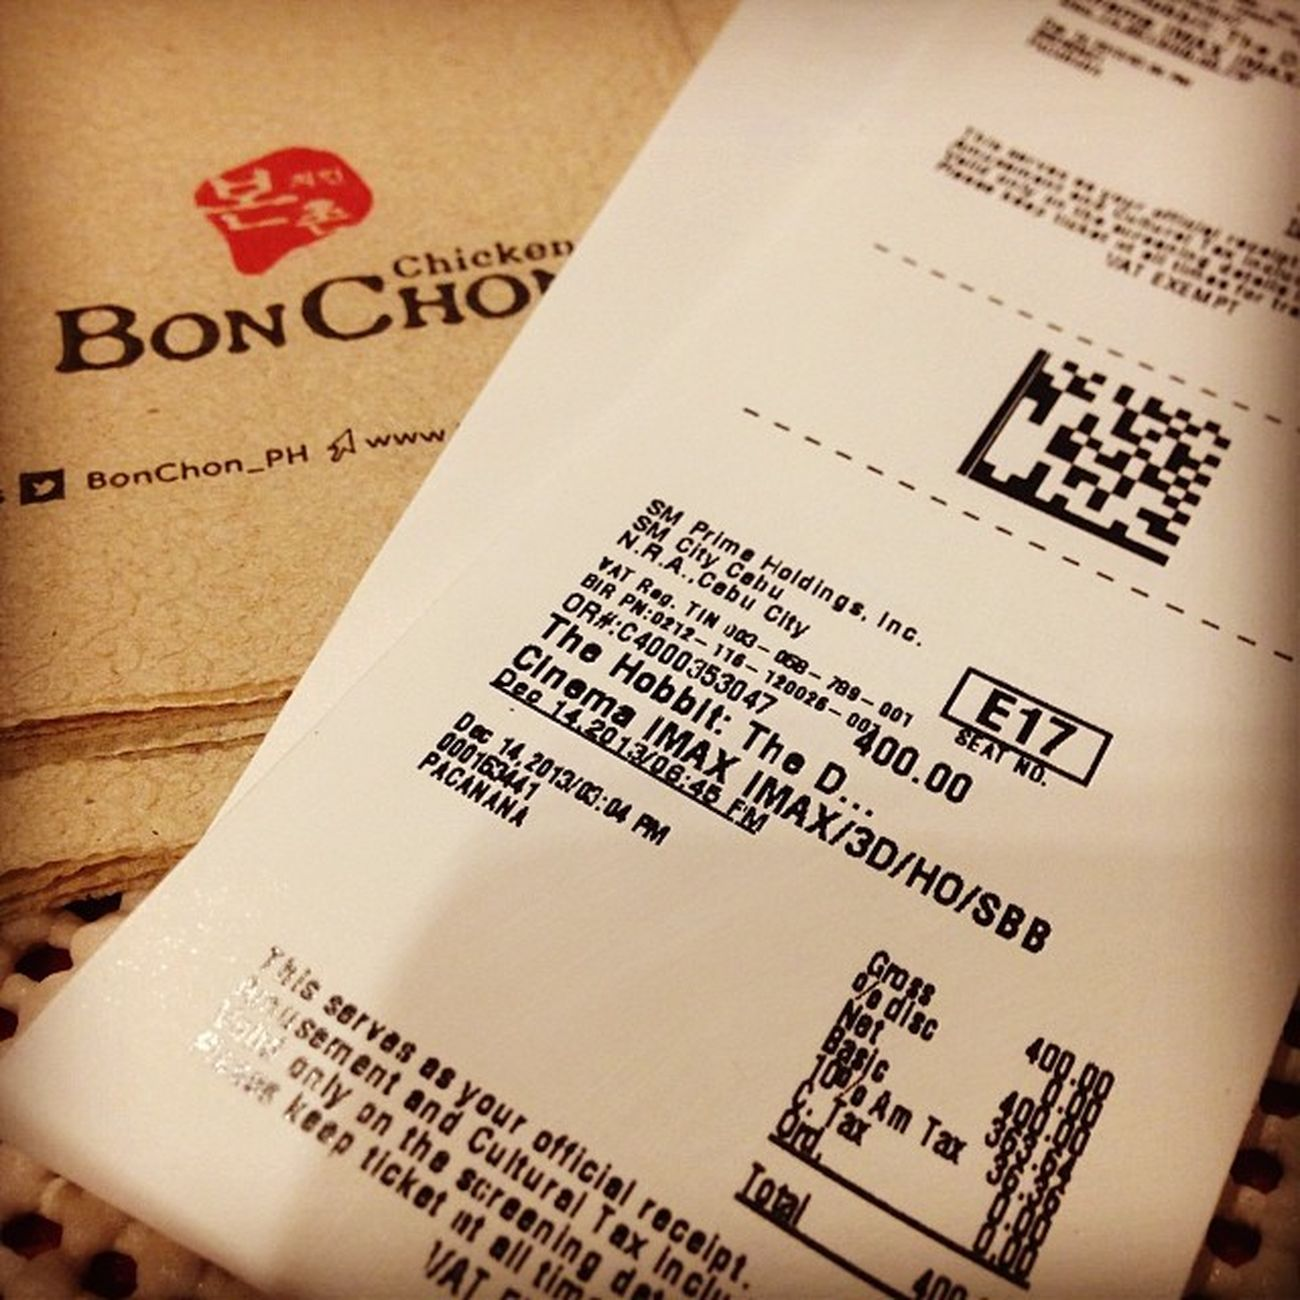 Wasting time... kay 6:45 pm pa ang movie TheHobbit BonChon